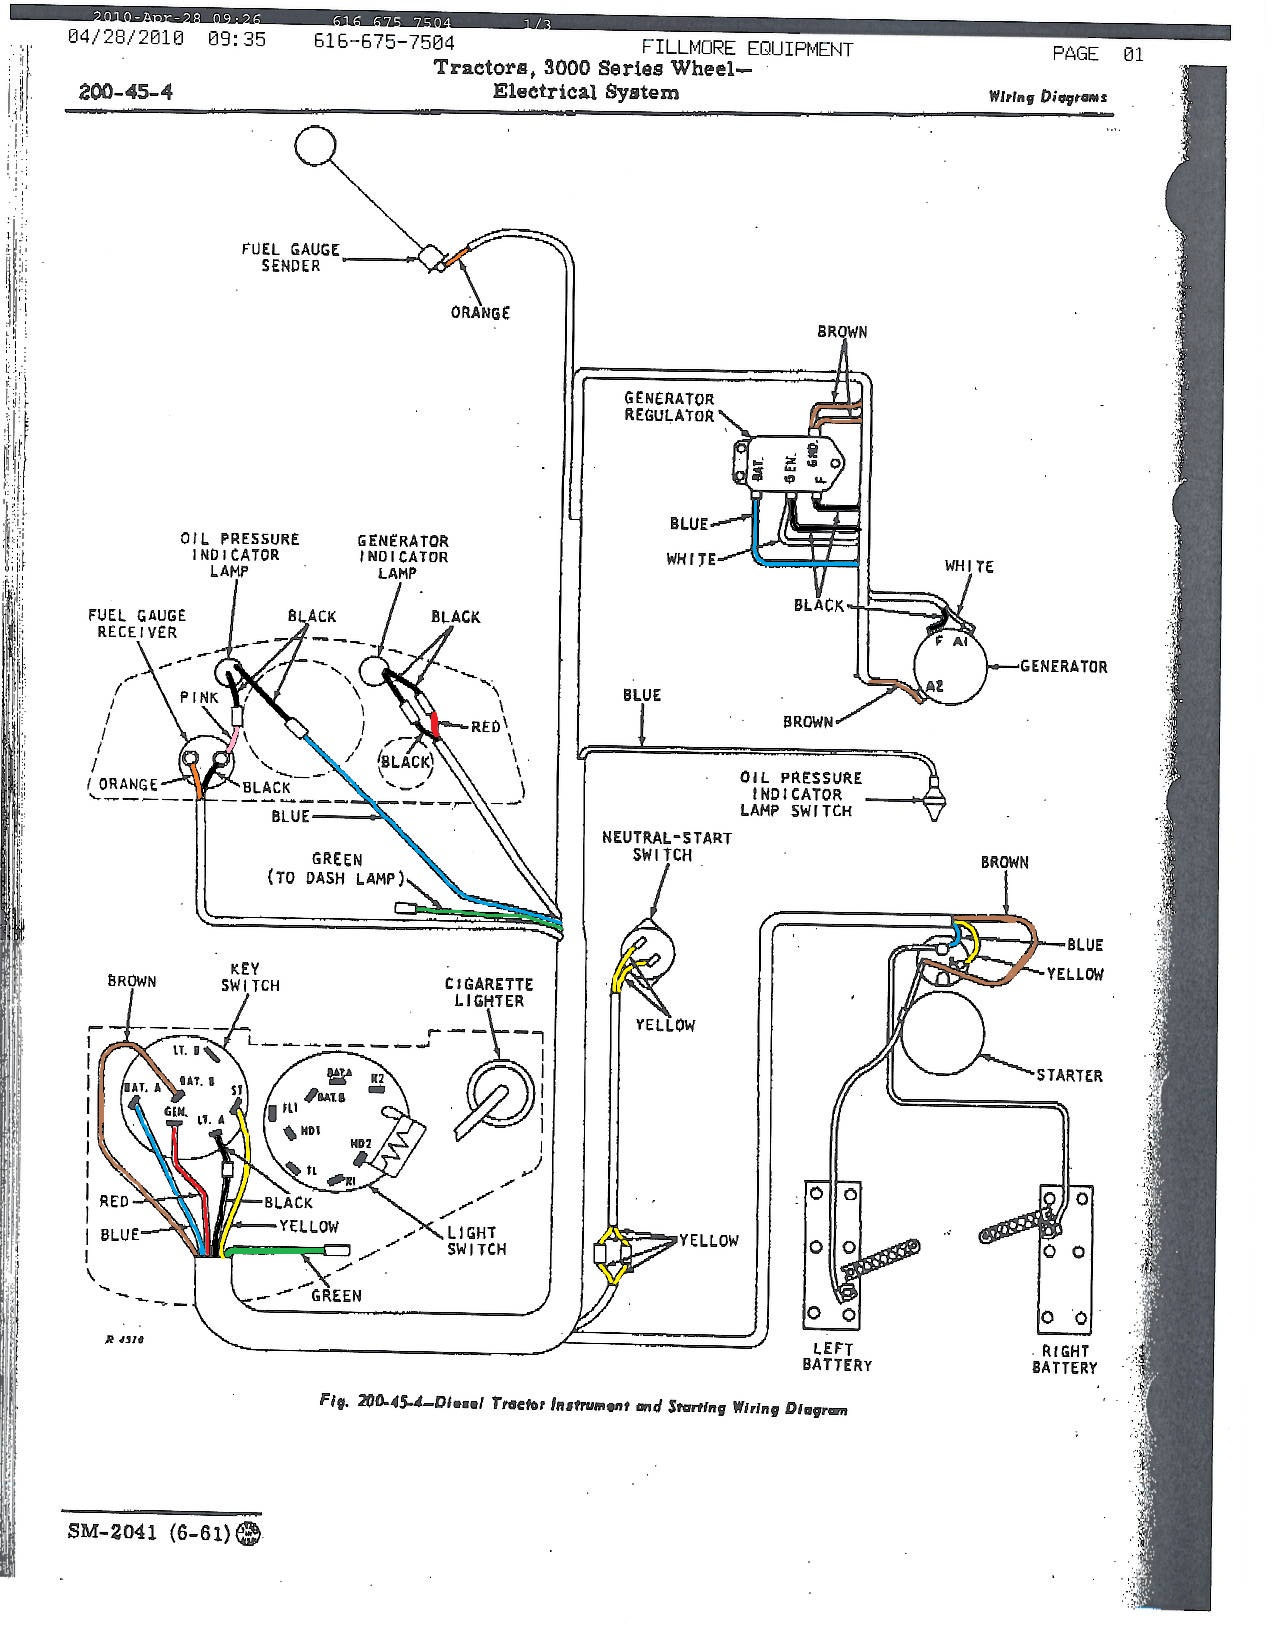 Wiring Diagram For John Deere 4020 Monsoon Amp Wiring Diagram Vww 69 Yenpancane Jeanjaures37 Fr